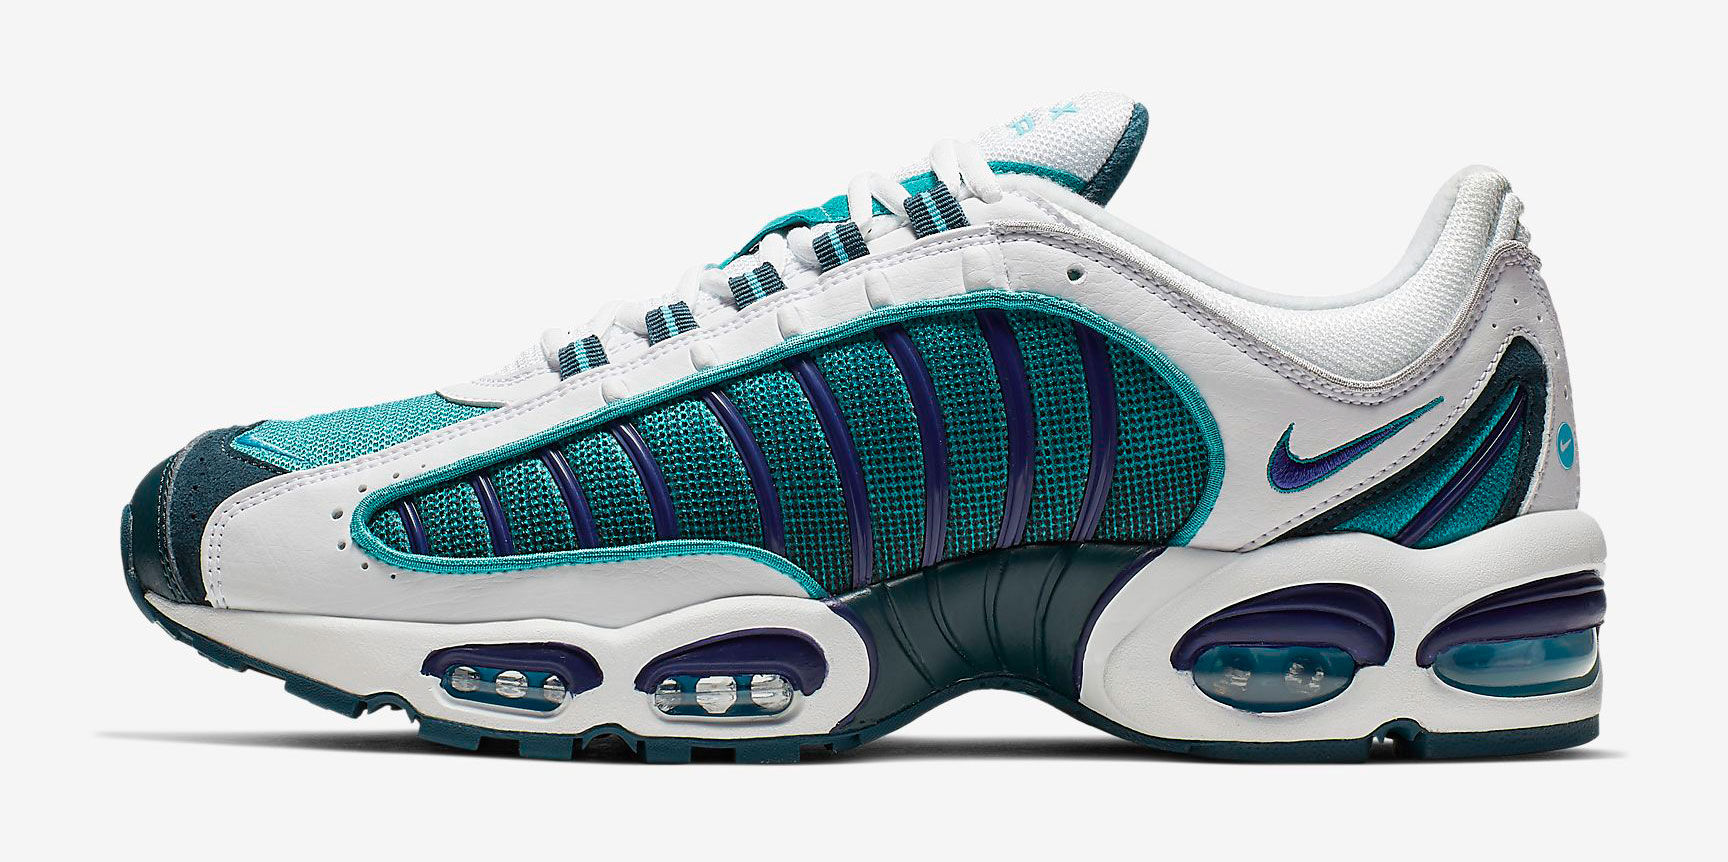 nike-air-max-tailwind-spirit-teal-release-date